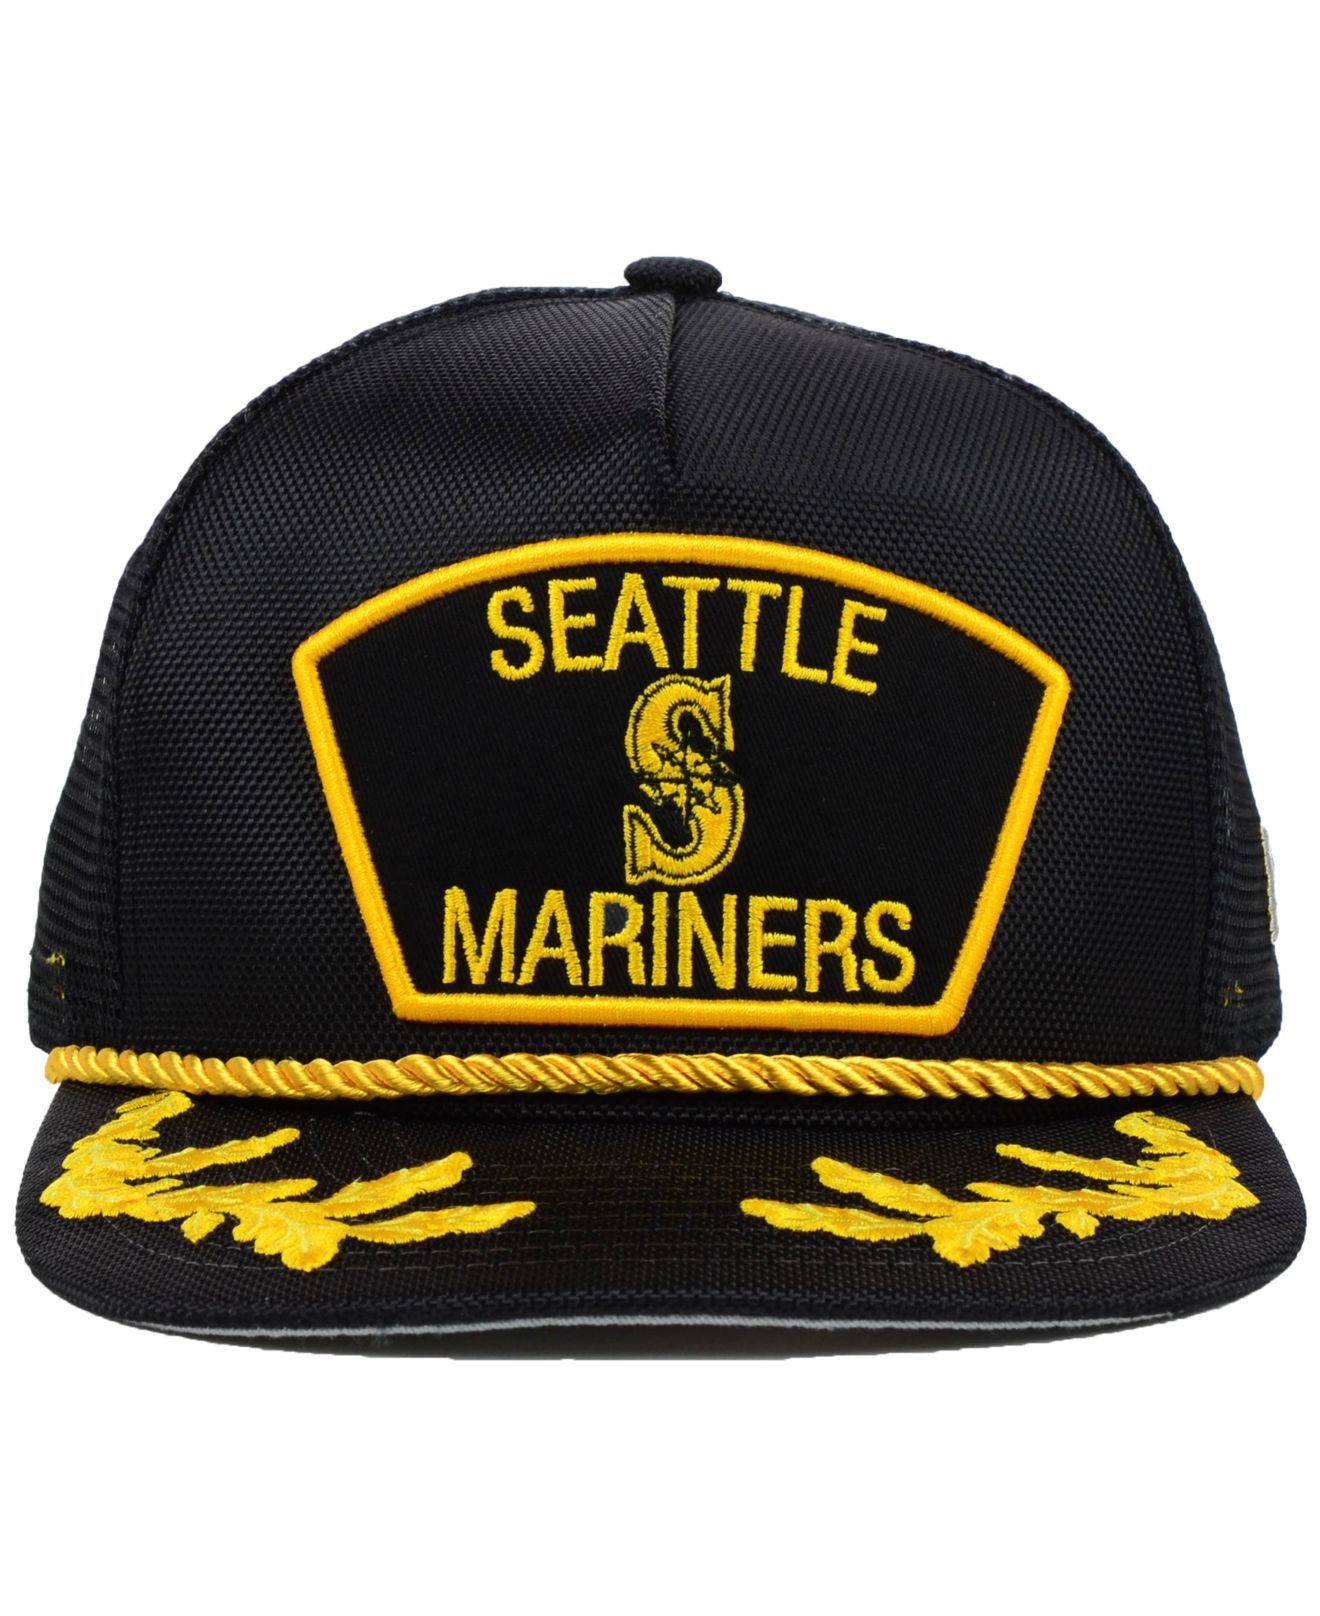 official photos 3607a 73f1a get lyst ktz seattle mariners mlb 9fifty snapback cap in black for men  bdead 8bbf9